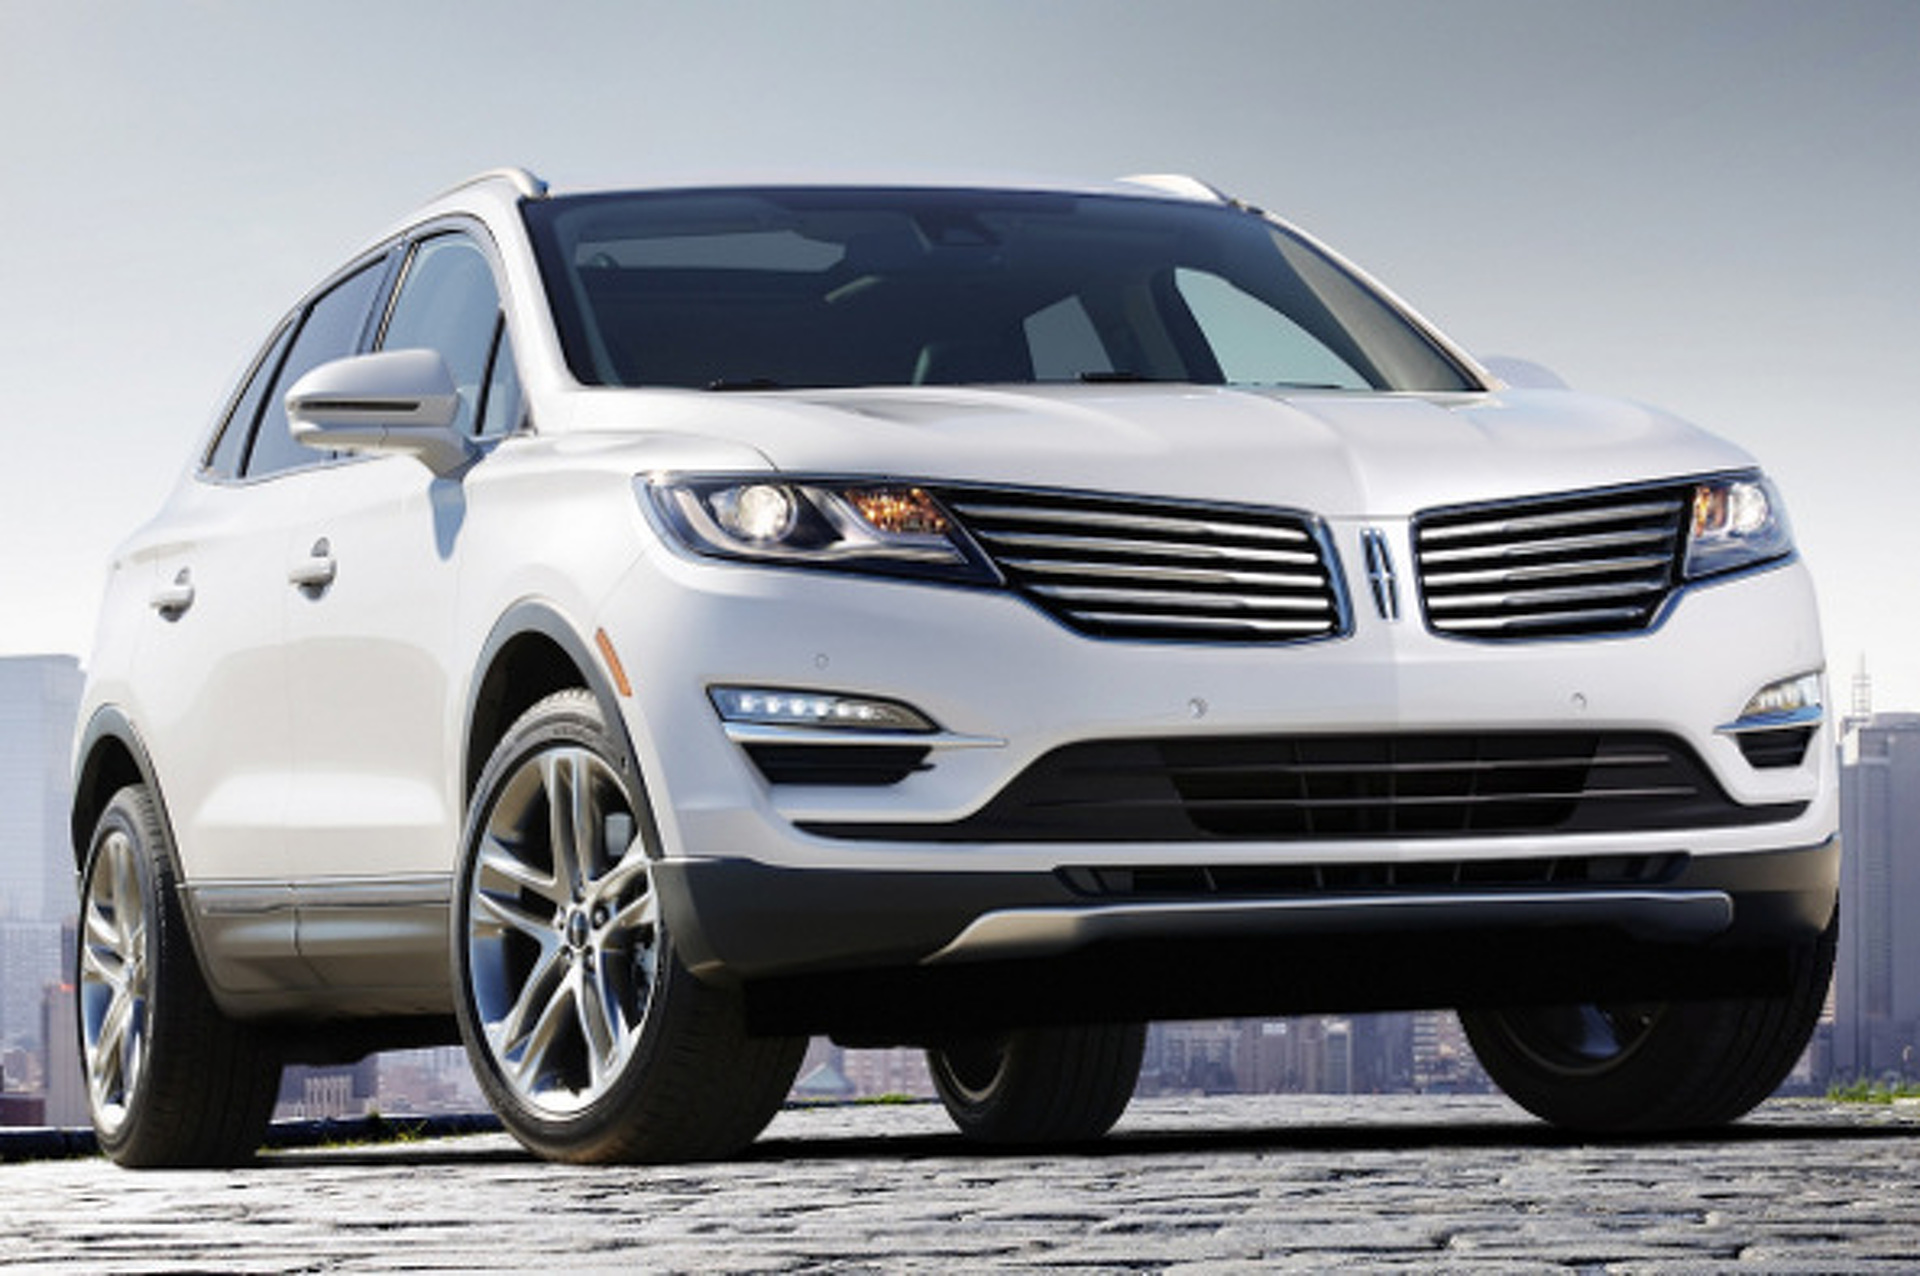 Why The MKC Crossover Is Going to Save Lincoln